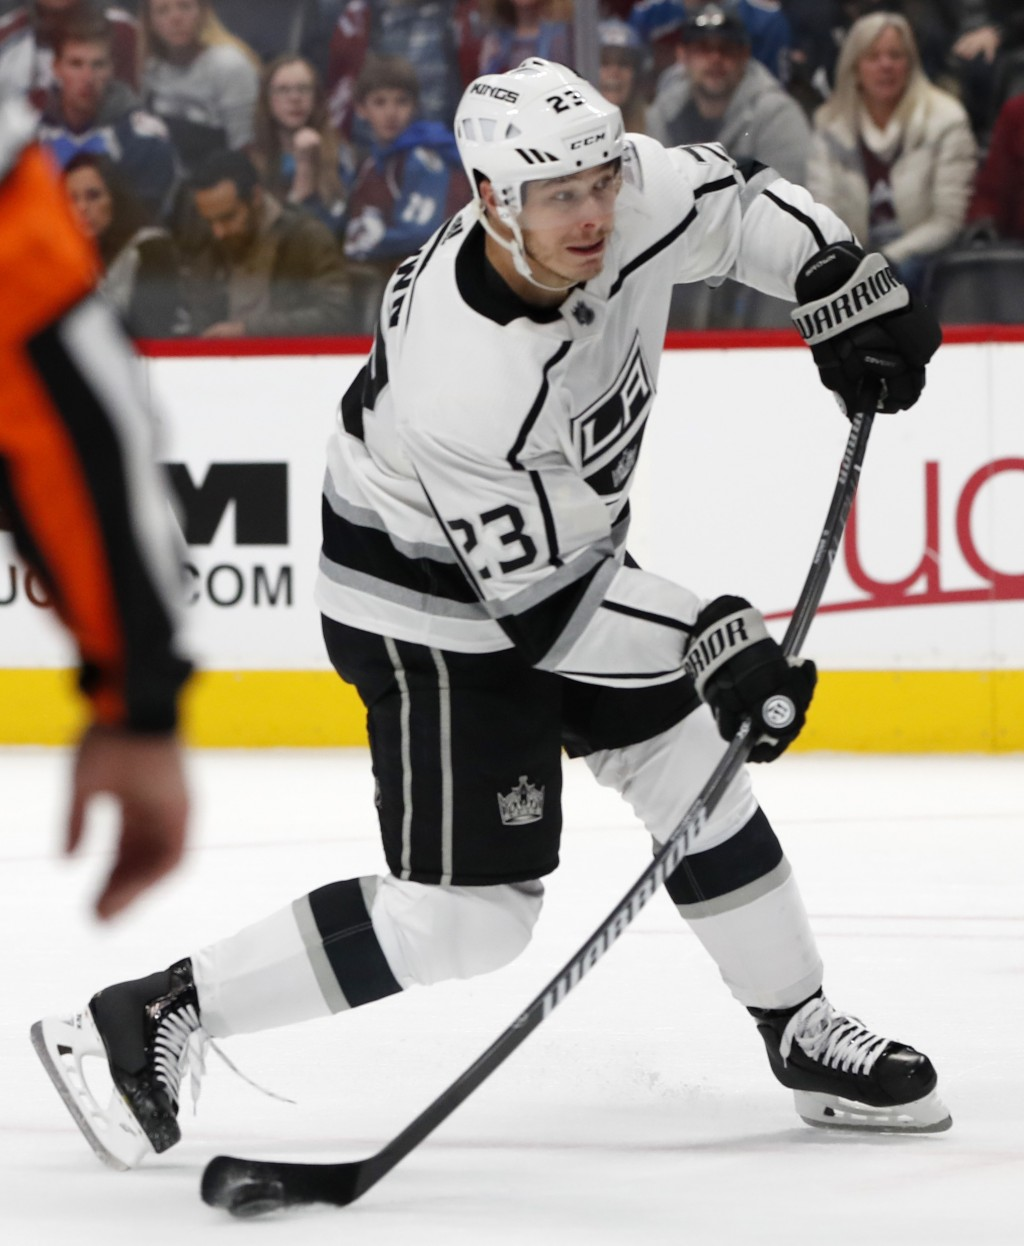 Los Angeles Kings right wing Dustin Brown shoots the winning goal in overtime of an NHL hockey game against the Colorado Avalanche on Monday, Dec. 31,